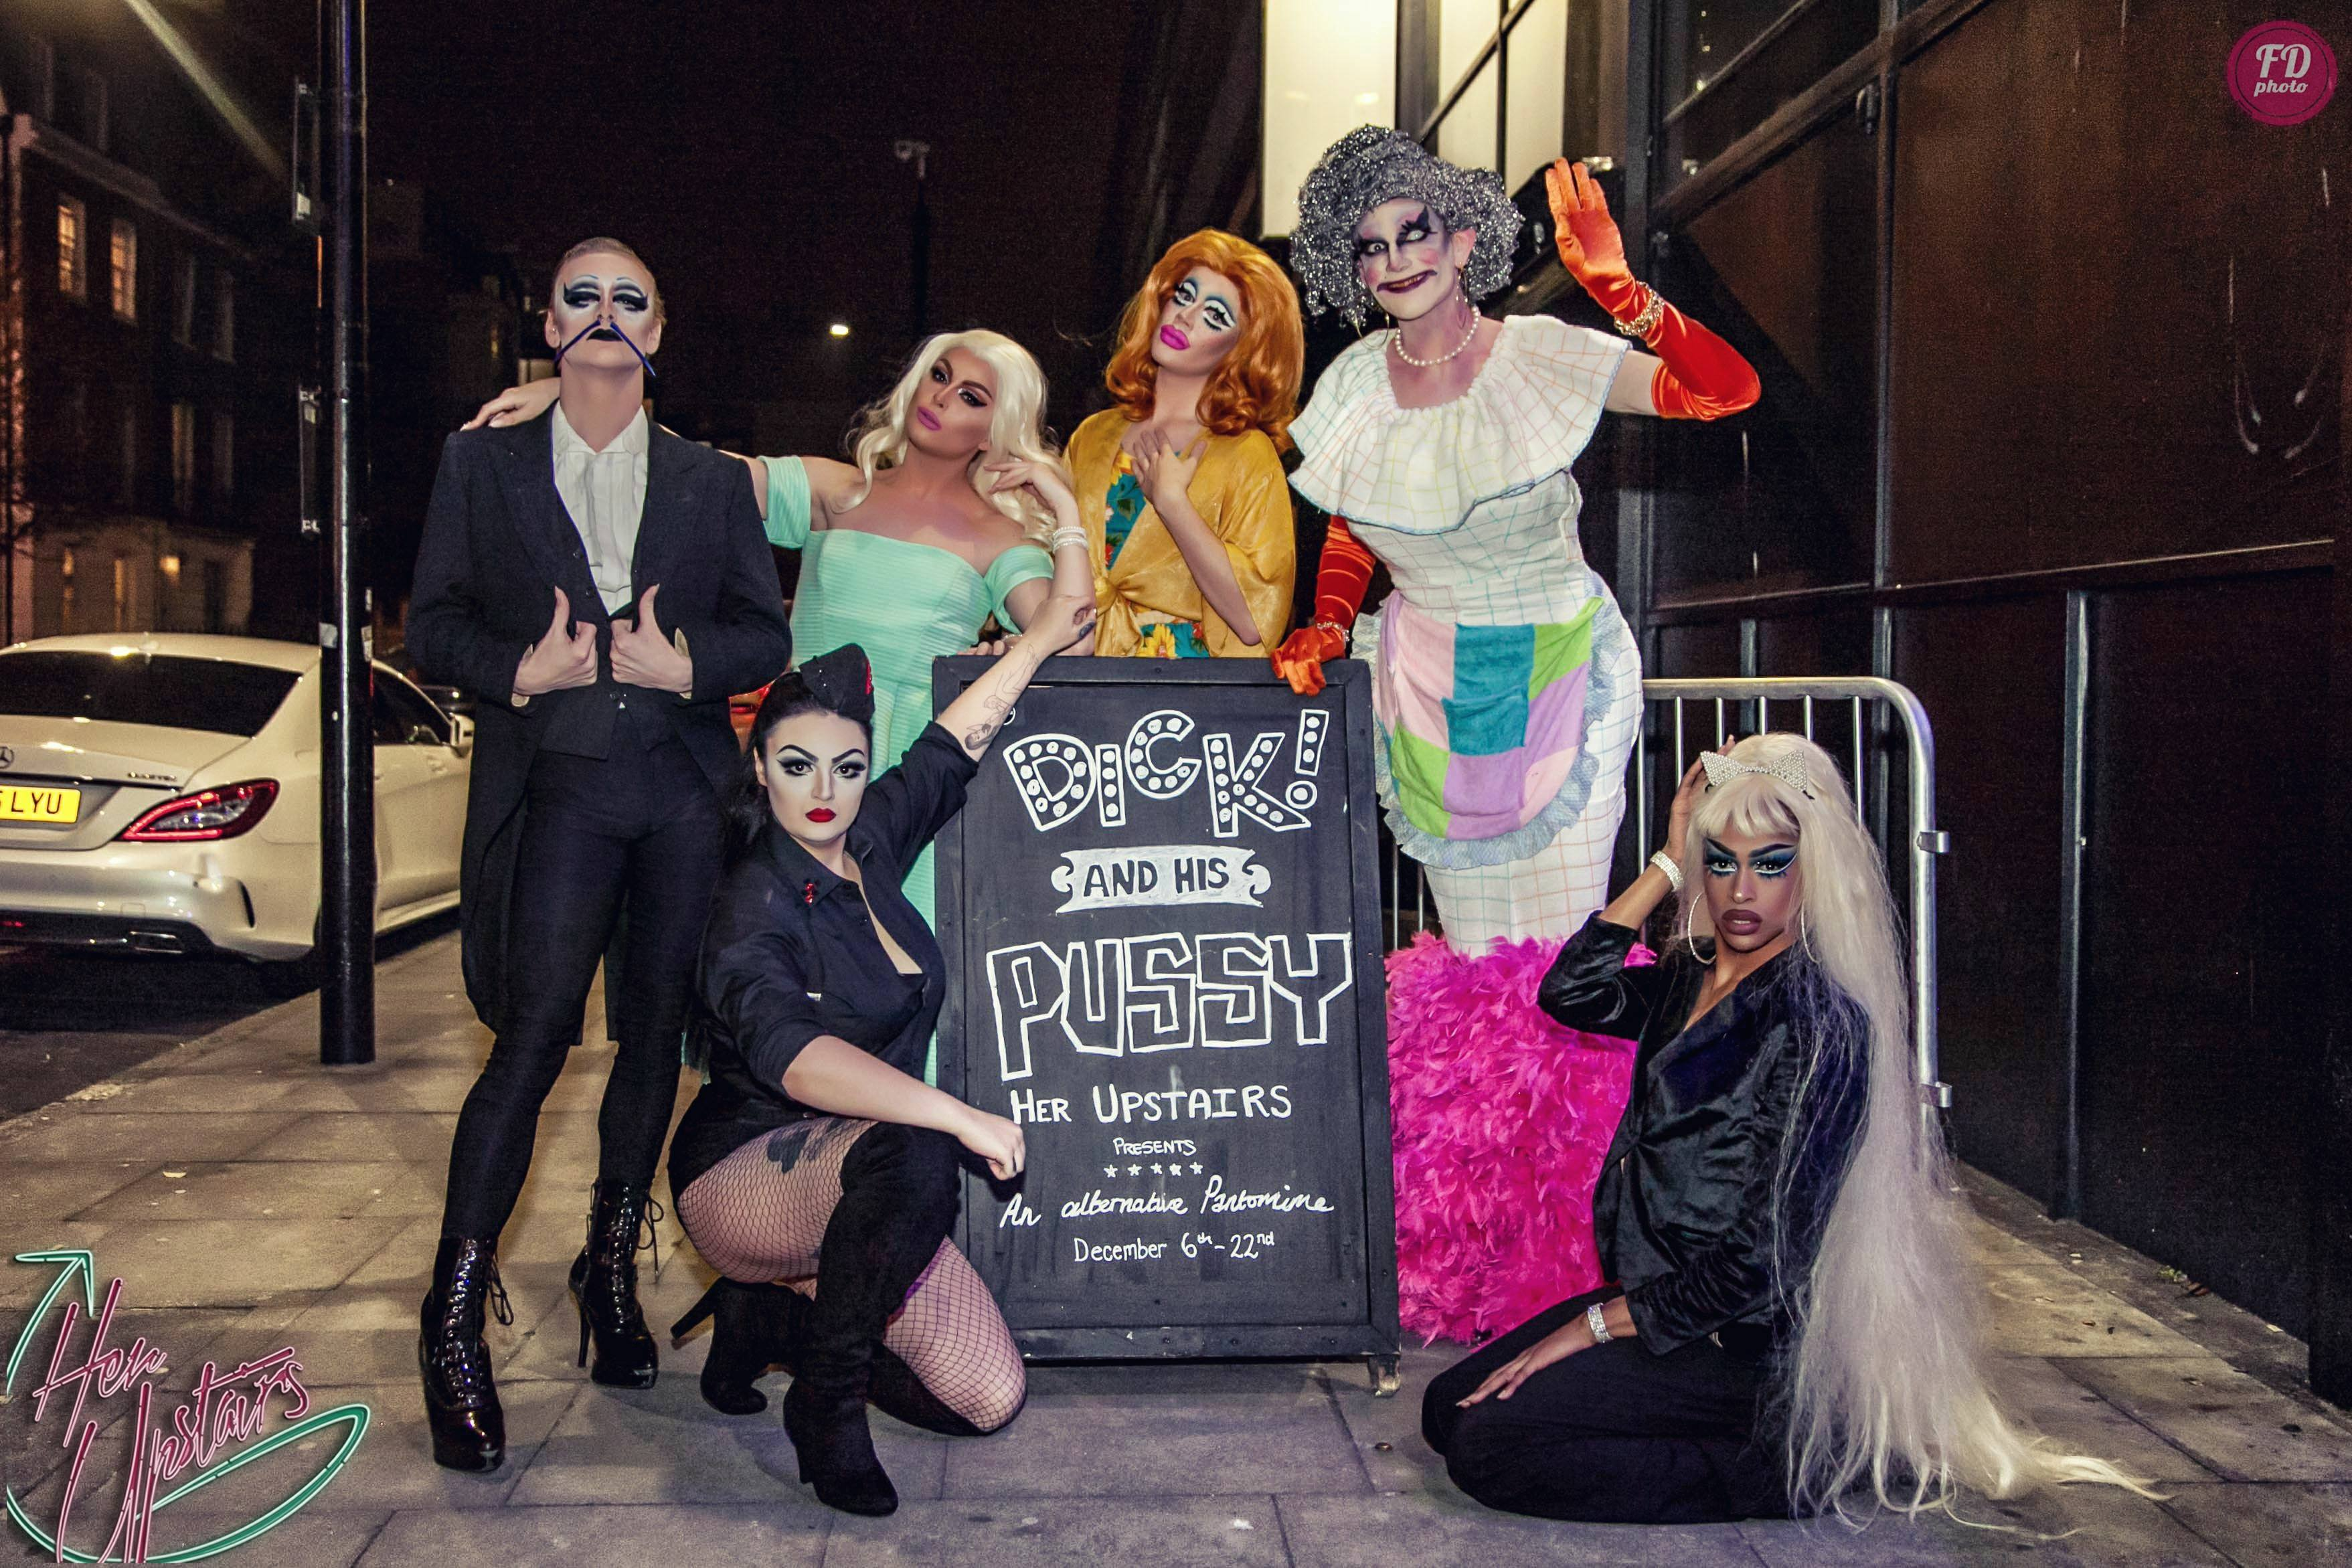 The cast of Dick and His Pussy - our first alternative pantomime, written by Gareth Joyner the man behind Myra Dubois and Frank Lavender